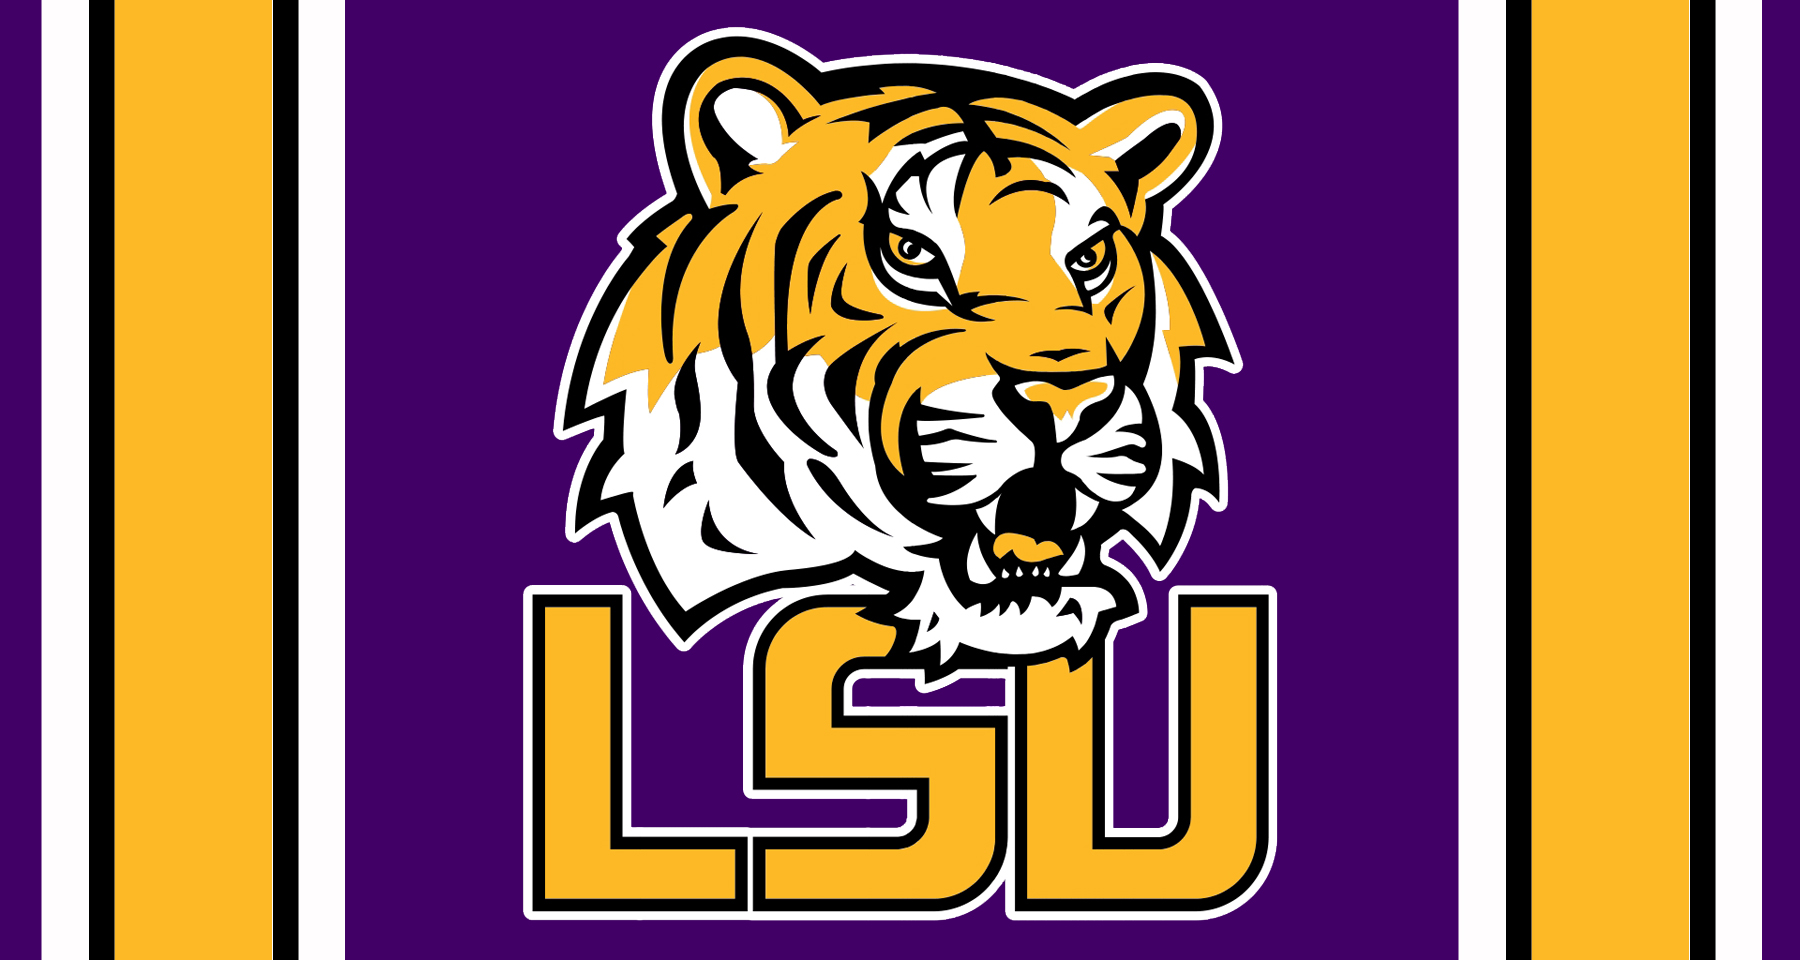 LSU Desktop Wallpaper Modern Logo Cajun Pygmy Design Pinterest 1800x960